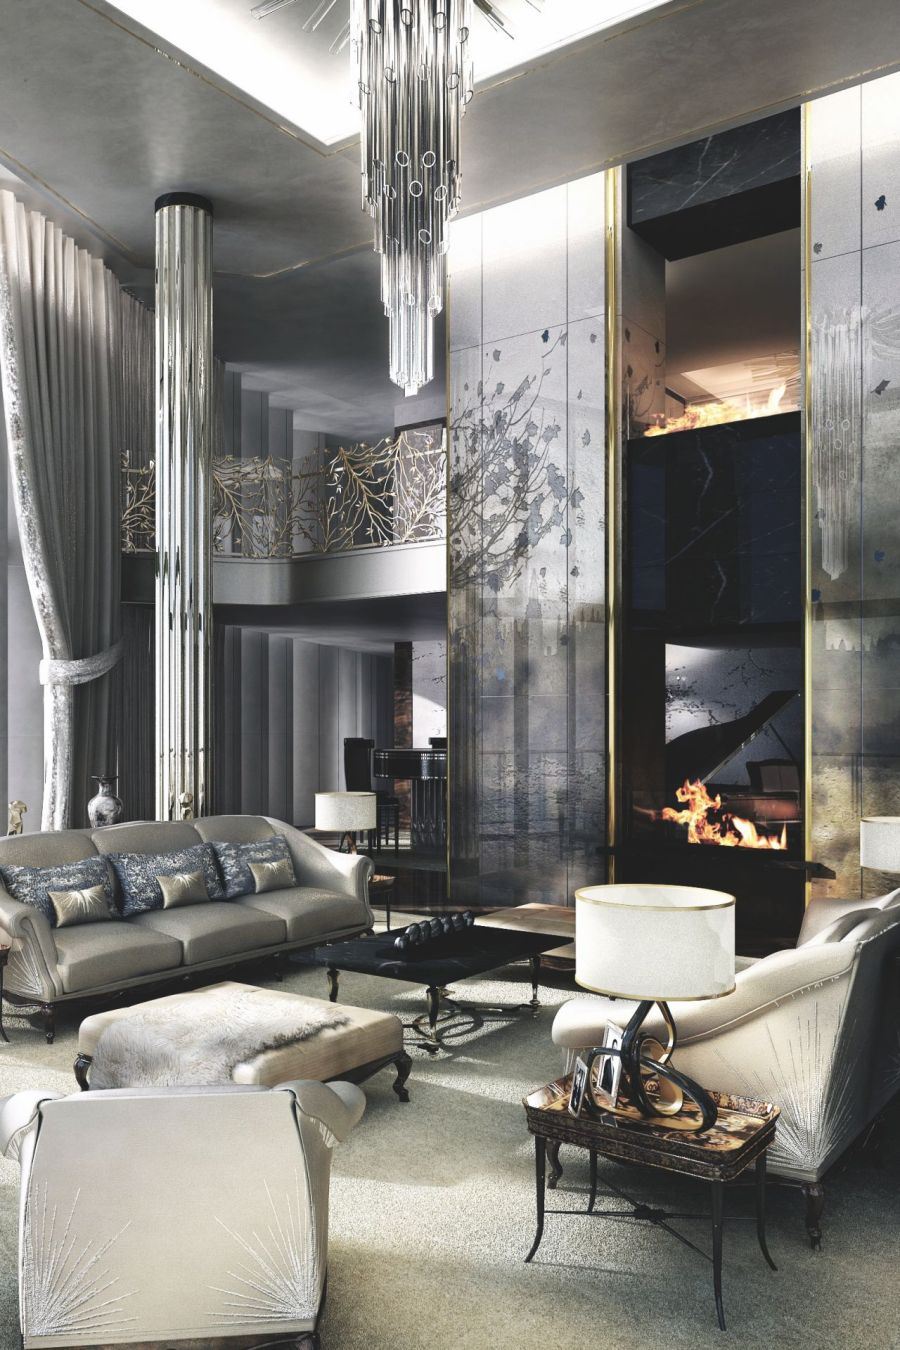 interior design ideas for a glamorous living room - Interior Designs Ideas